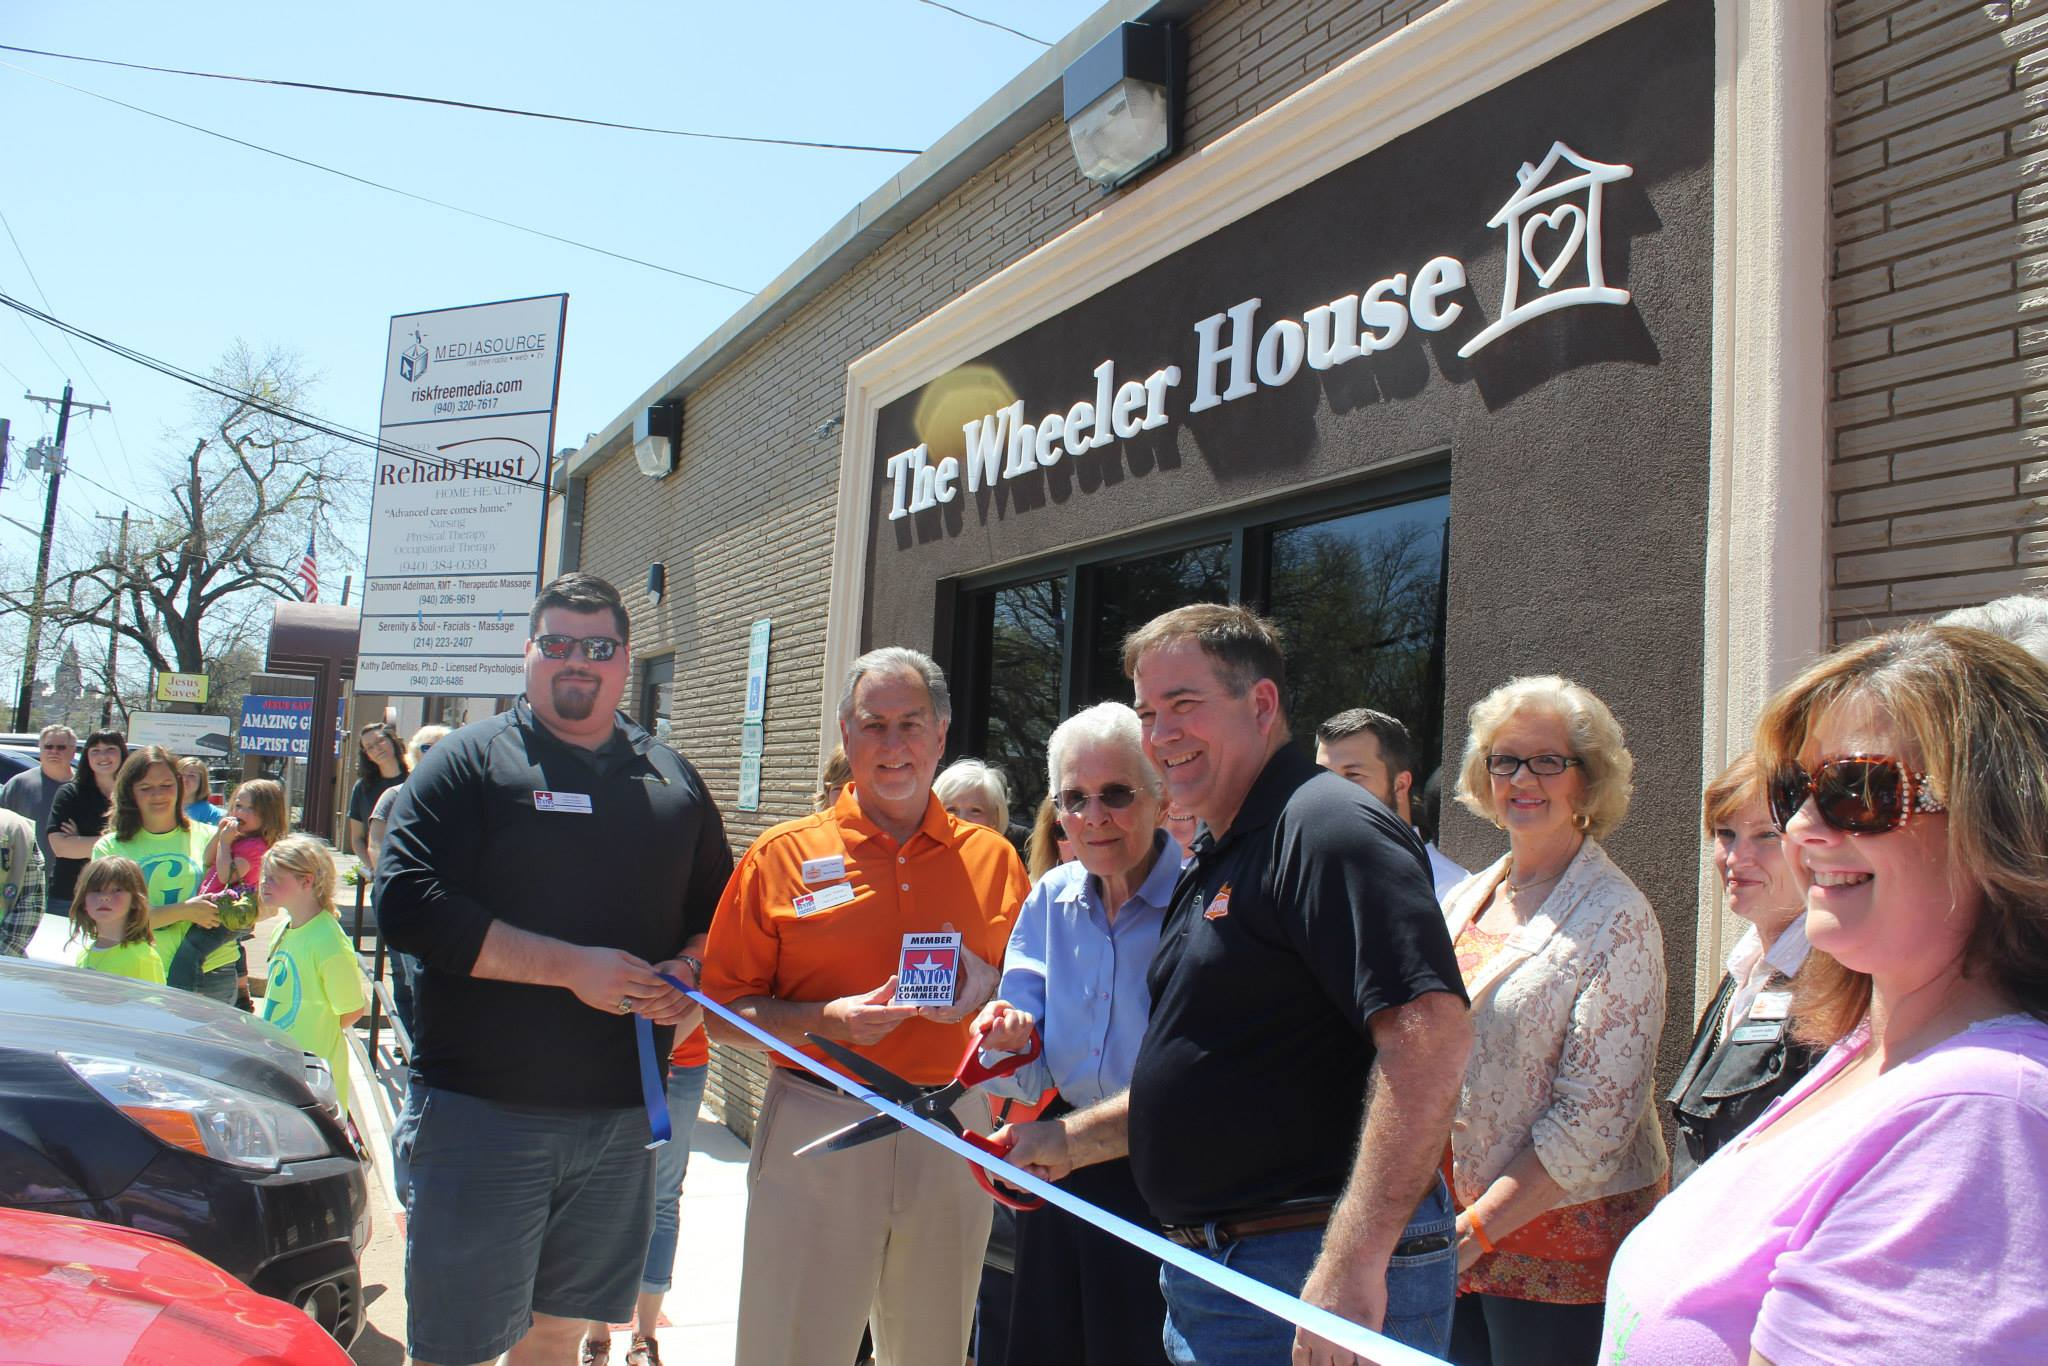 Pat Smith and former Denton Mayor Elinor Hughes cut the ribbon for the grand opening of The Wheeler House in 2015.